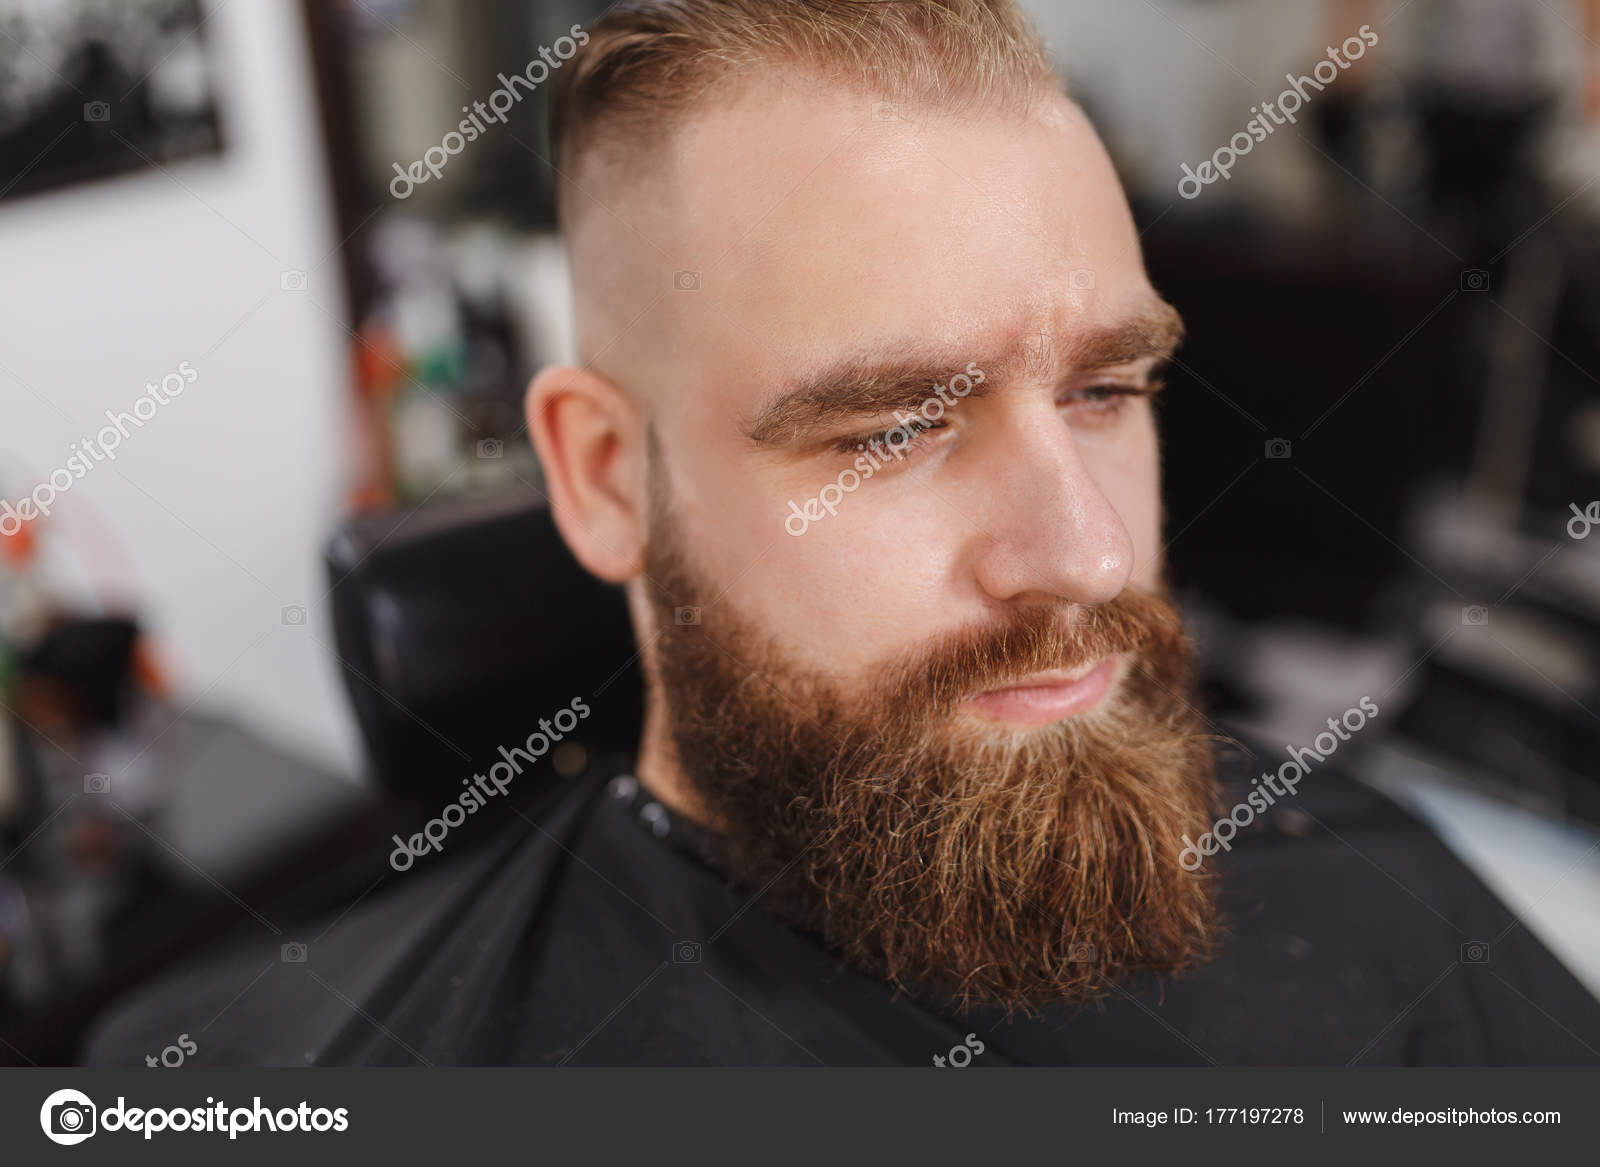 Coupe homme tendance avec barbe